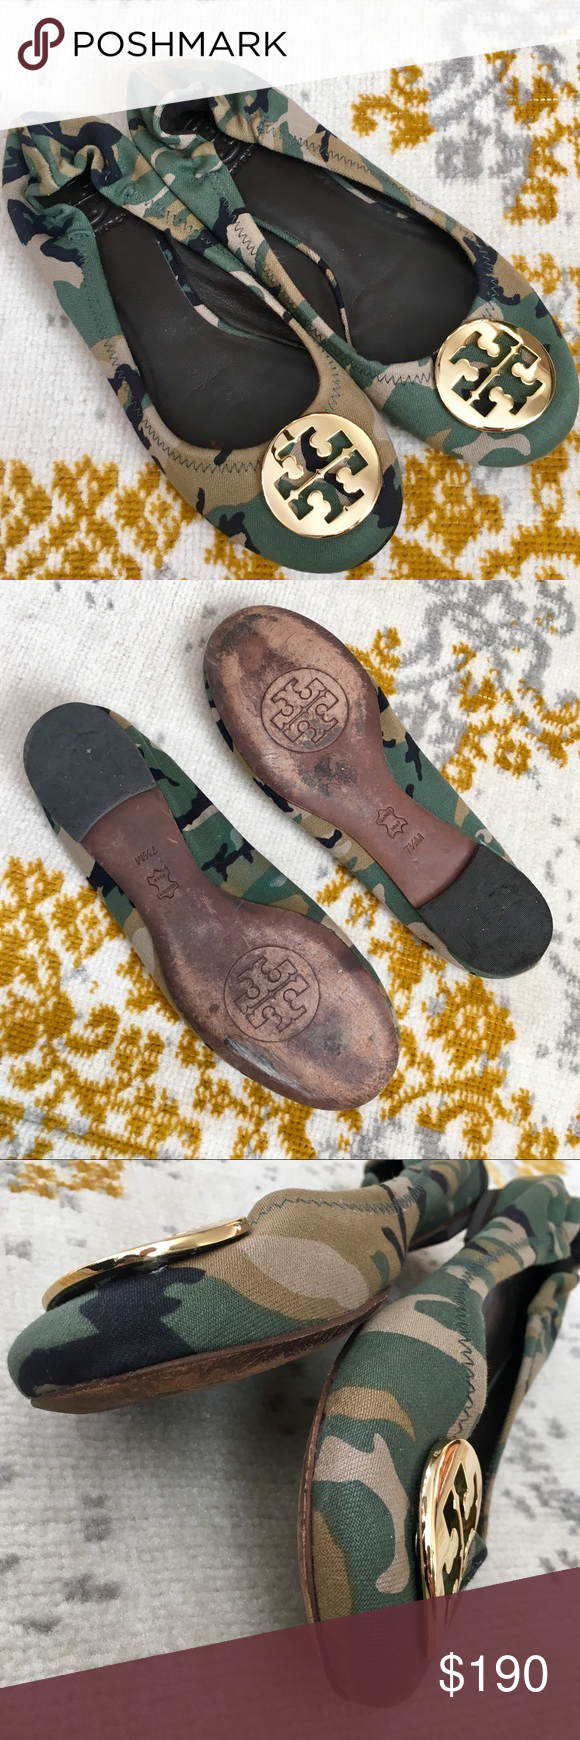 1b80dc714e34 Tory Burch Camo Reva Flats 7.5 EUC UNICORN RARE濾 Excellent condition- only  wear is to the soles. Beautiful flats! Tory Burch Shoes Flats   Loafers